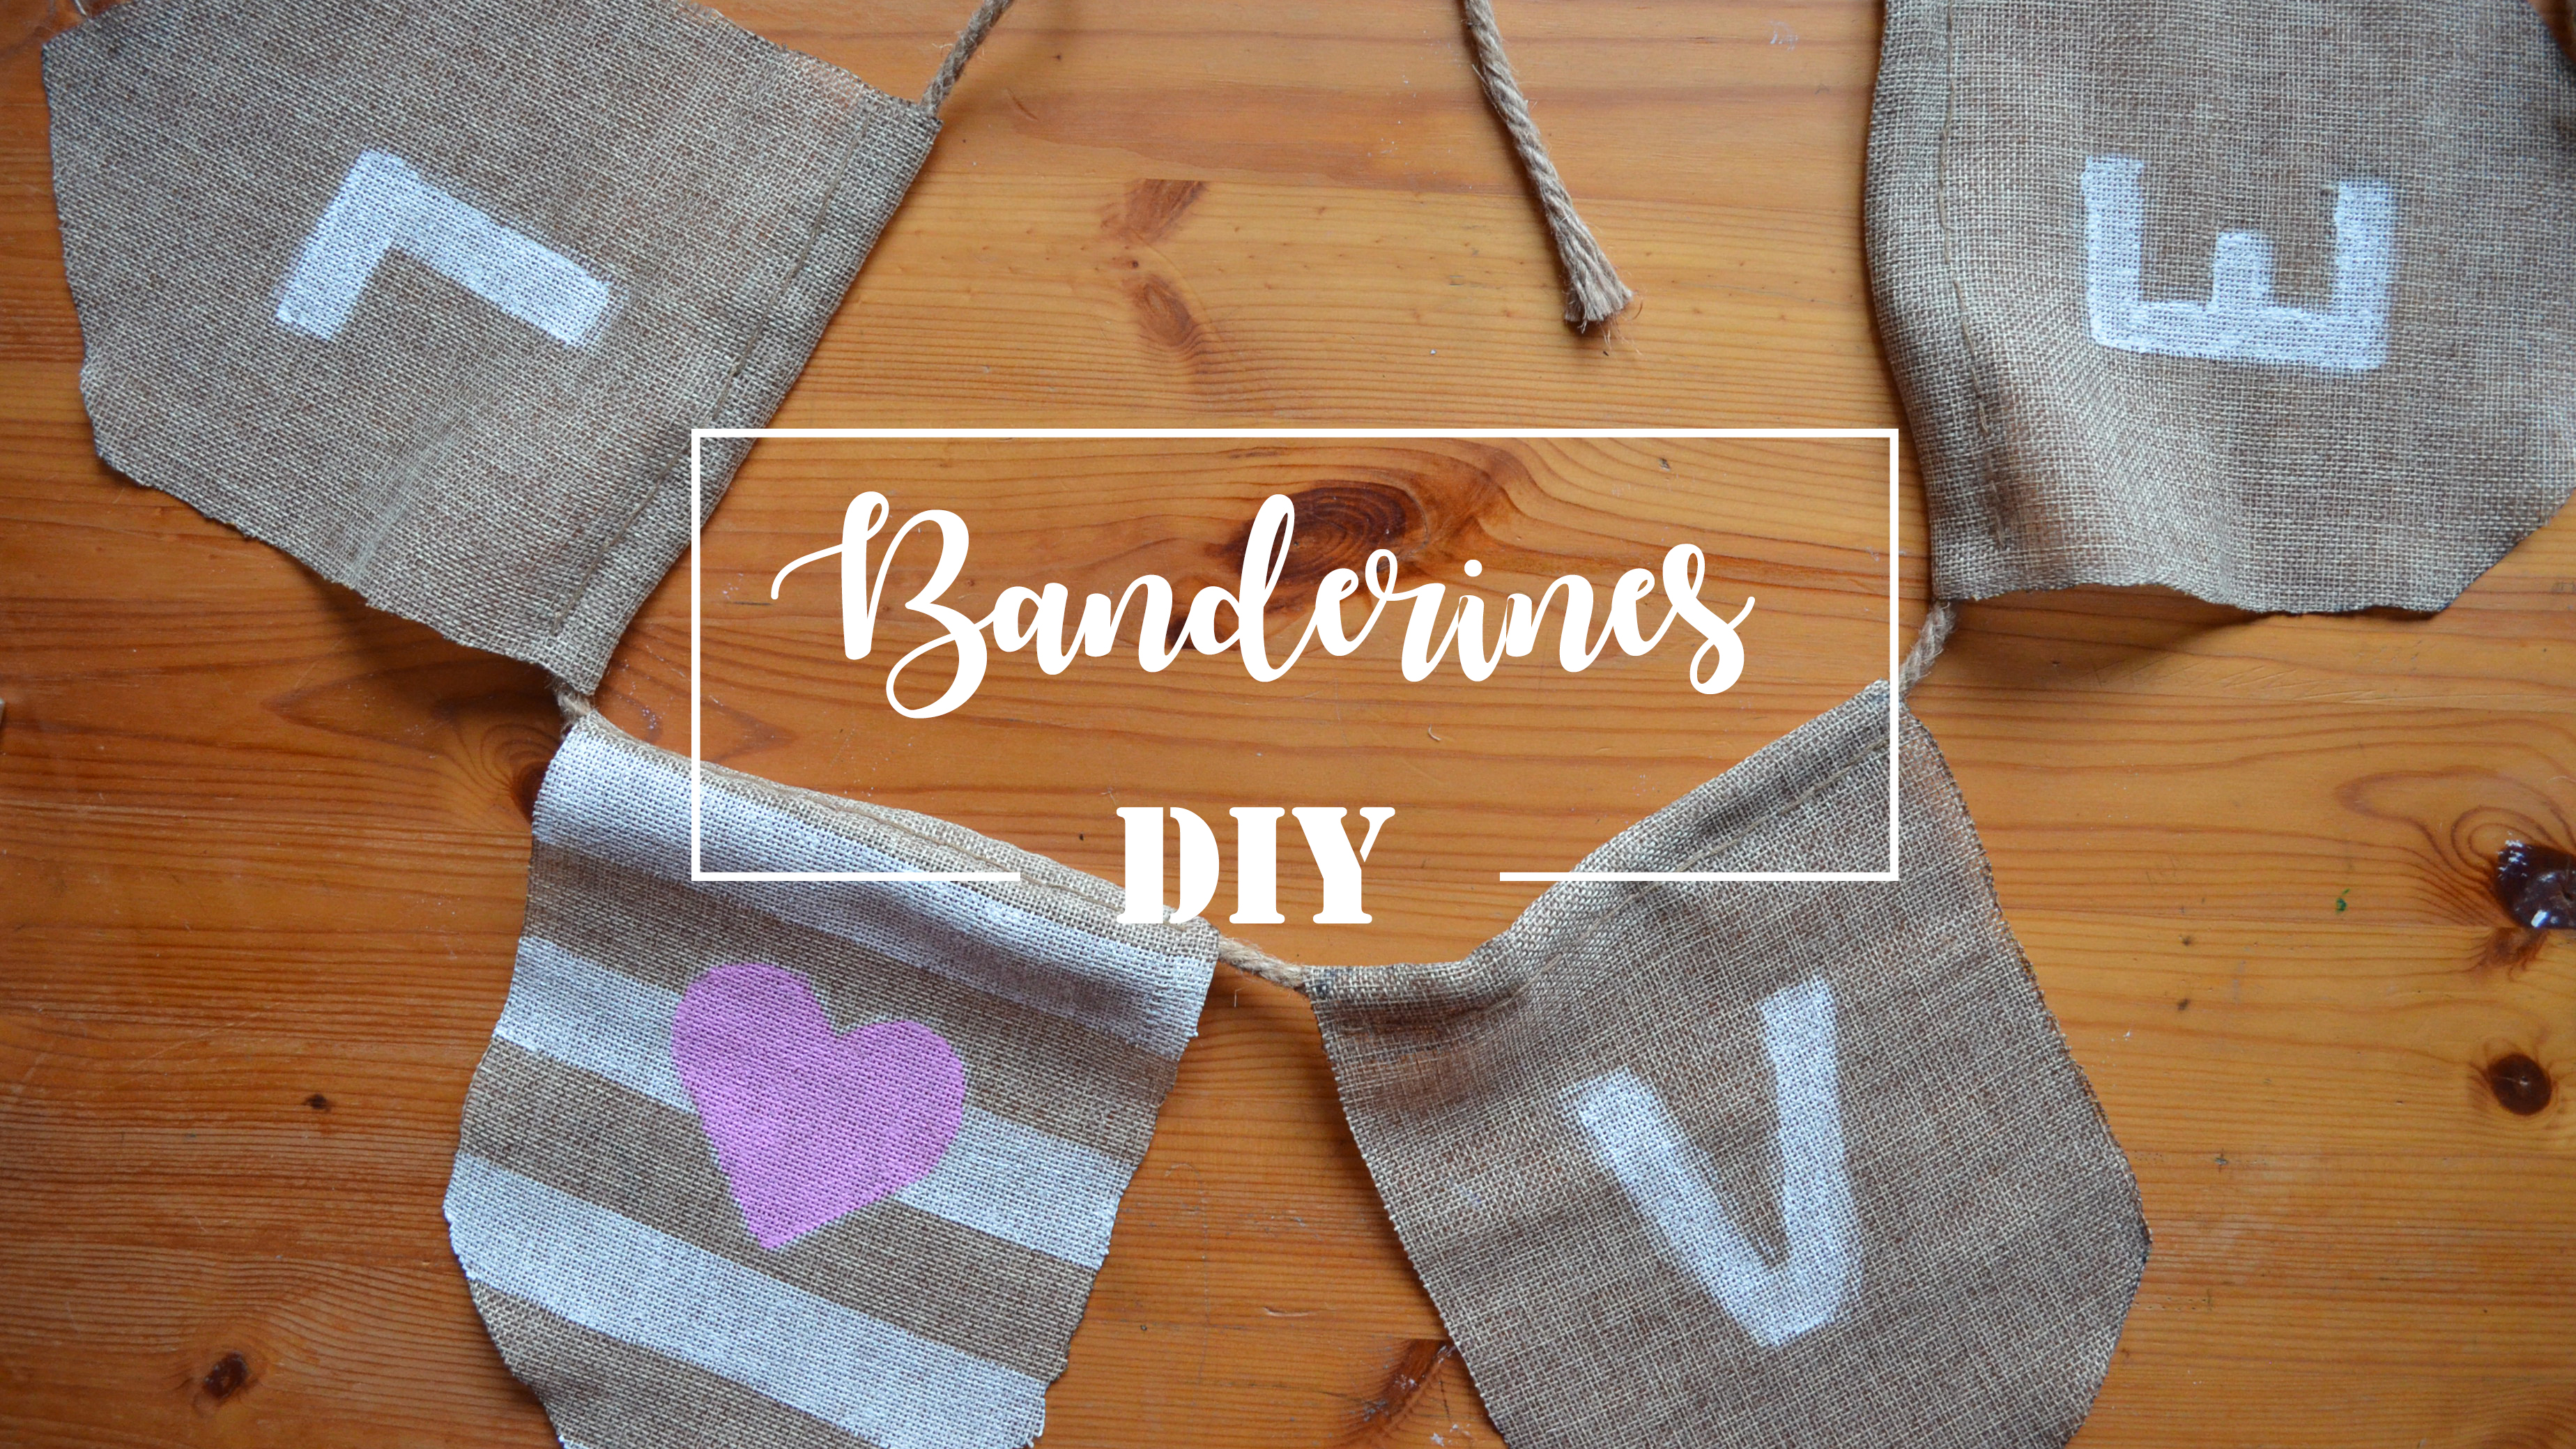 Banderines decorativos – DIY